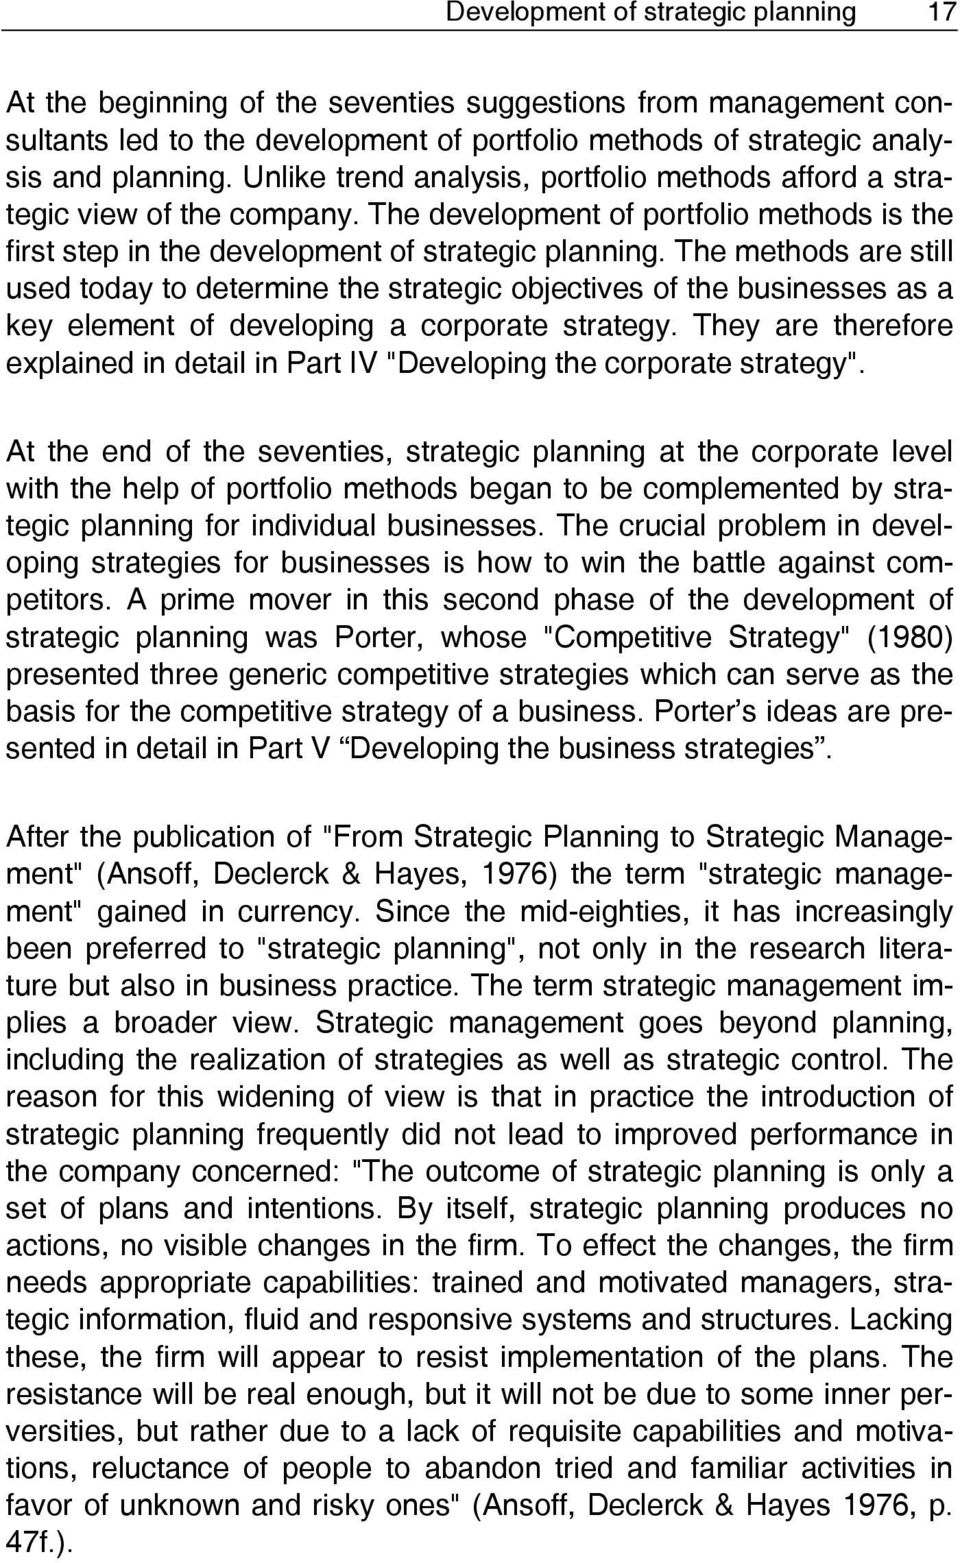 The methods are still used today to determine the strategic objectives of the businesses as a key element of developing a corporate strategy.